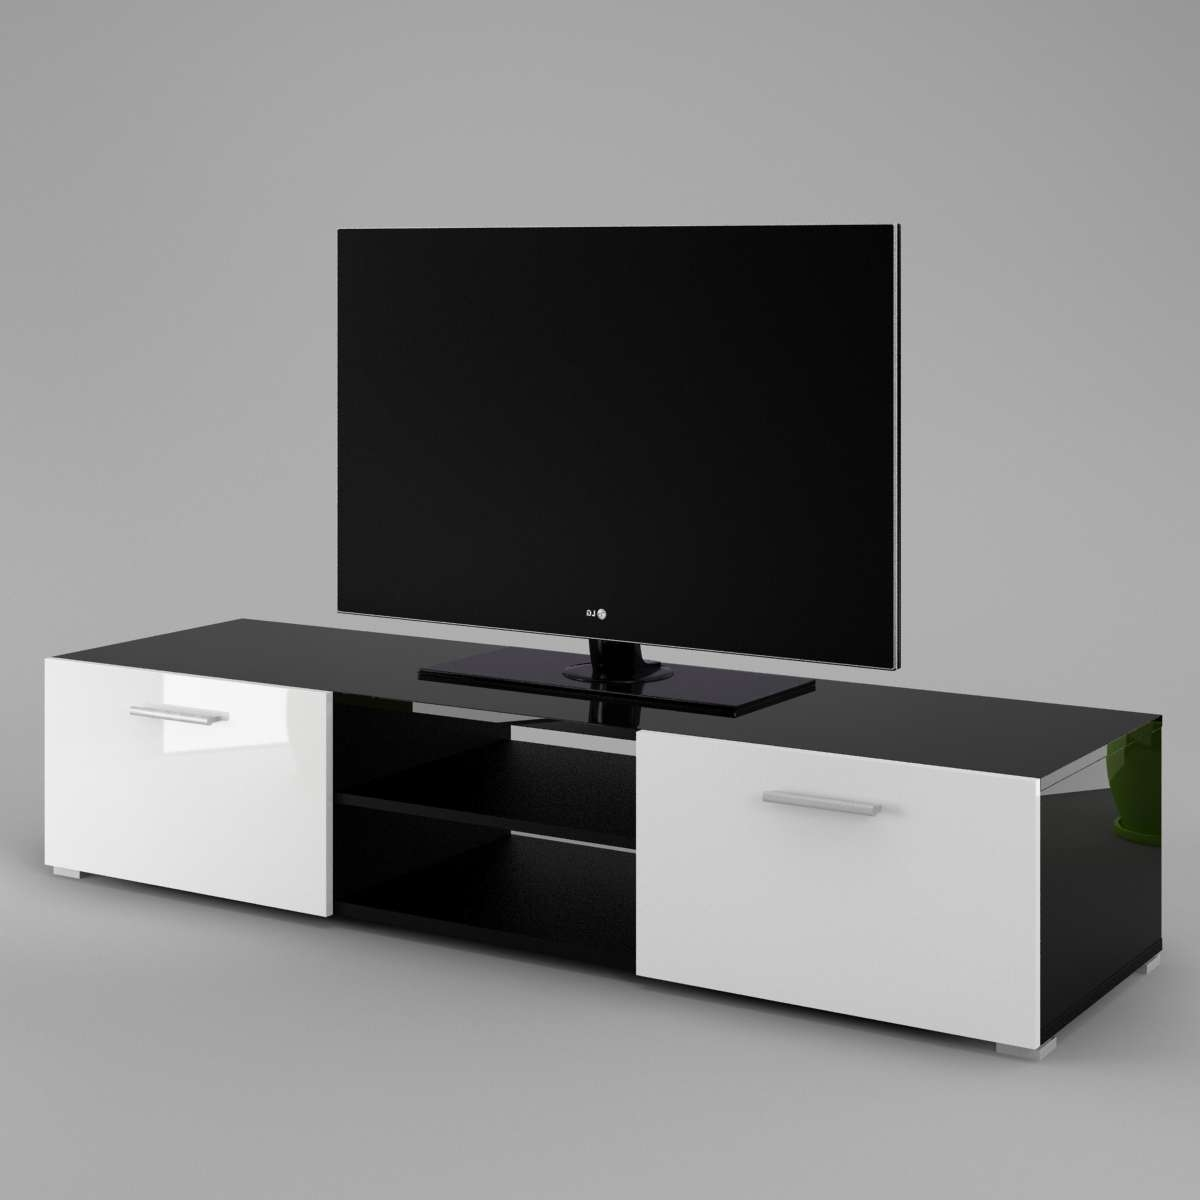 Tv Cabinet Luna – Labi Furniturelabi Furniture With Regard To High Gloss White Tv Cabinets (View 17 of 20)